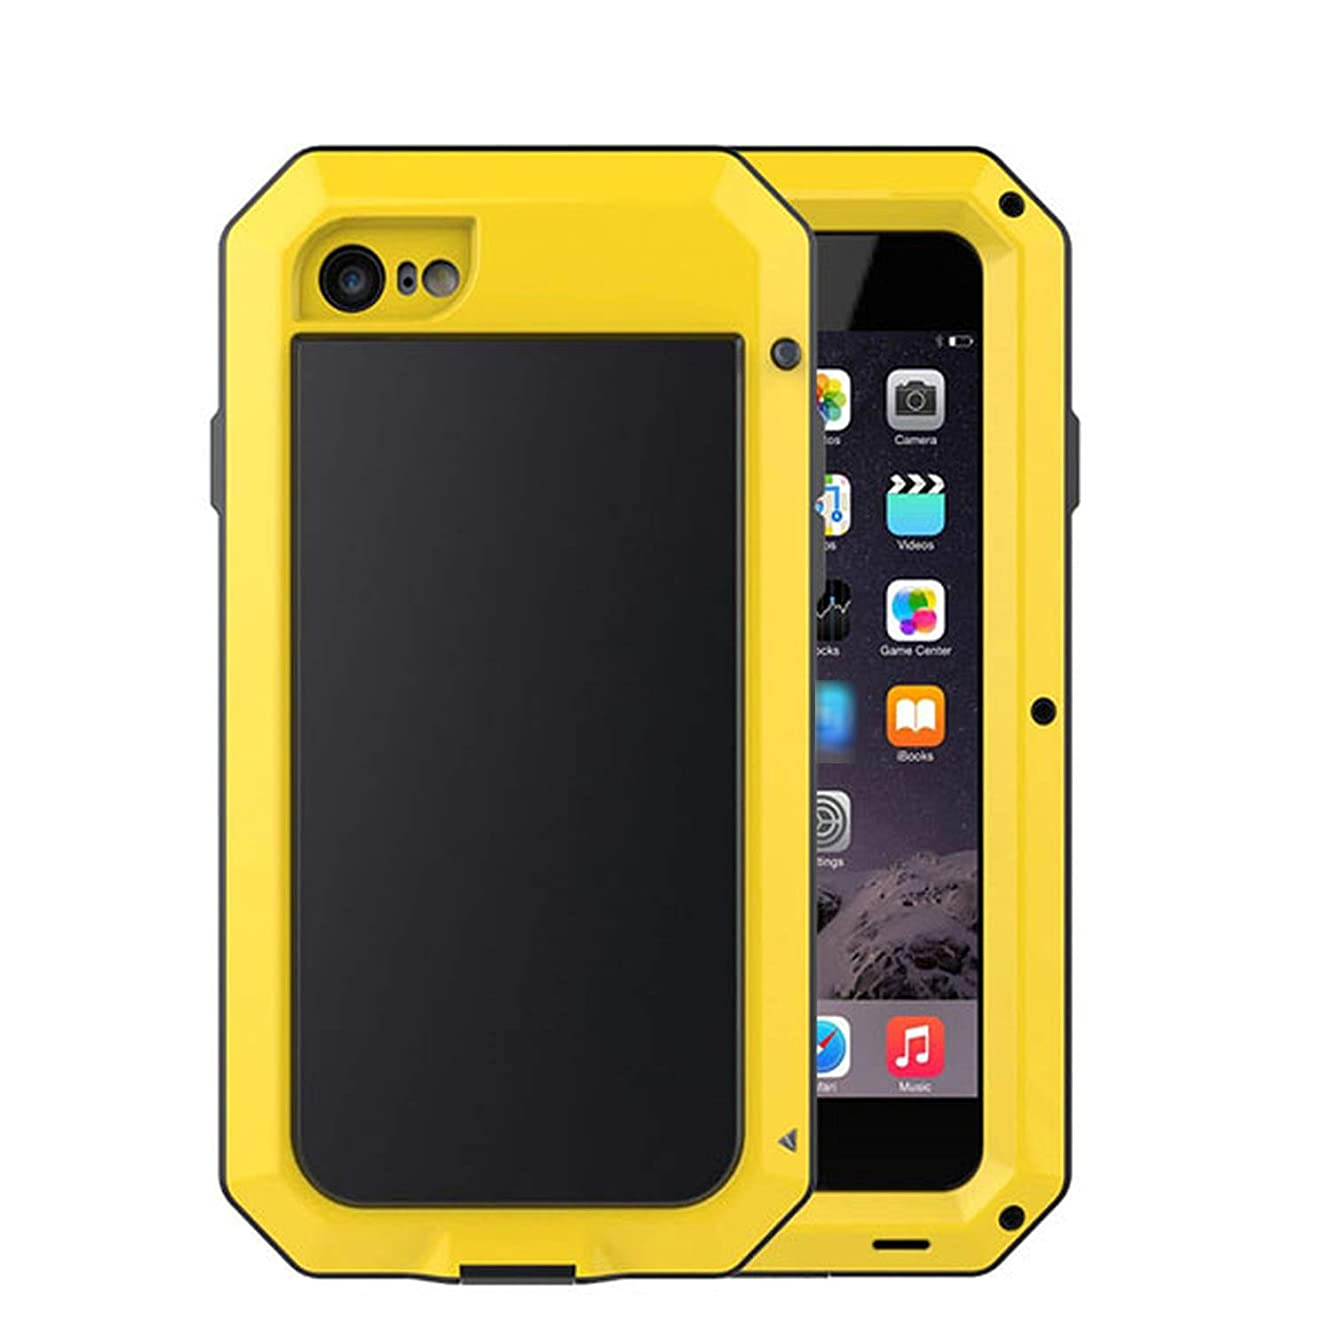 Luxury Shockproof Waterproof Metal Aluminum Phone Cases for iPhone X 8 7 6 6s Plus 5s SE Case Cover Screen Glass Film,Yellow,for iPhone Xs